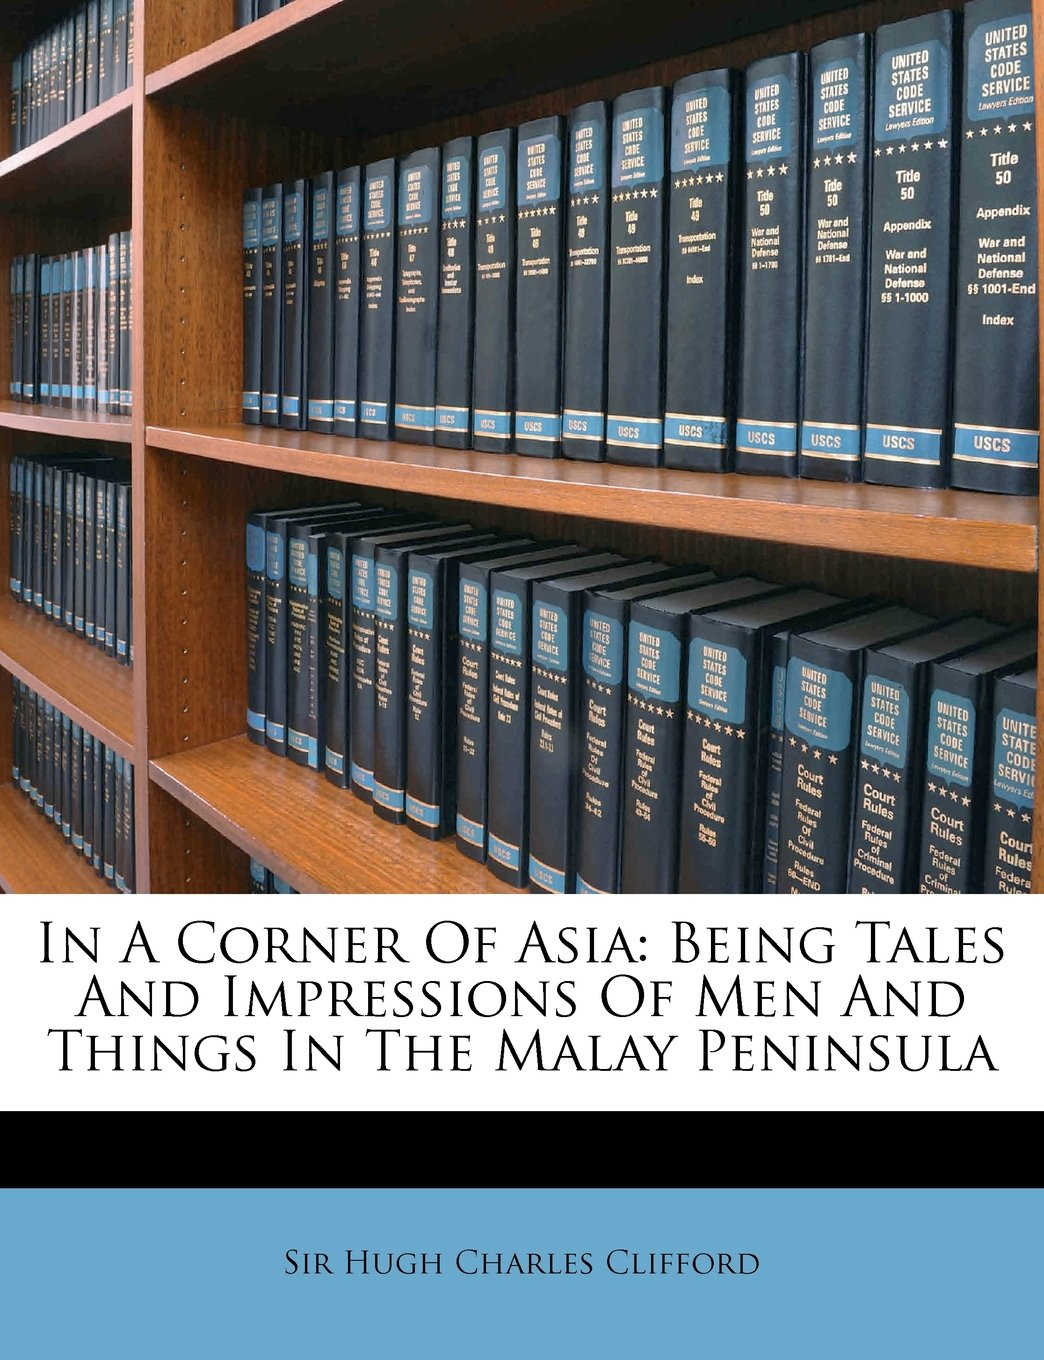 In a Corner of Asia: Being Tales and Impressions of Men and Things in the Malay Peninsula ebook